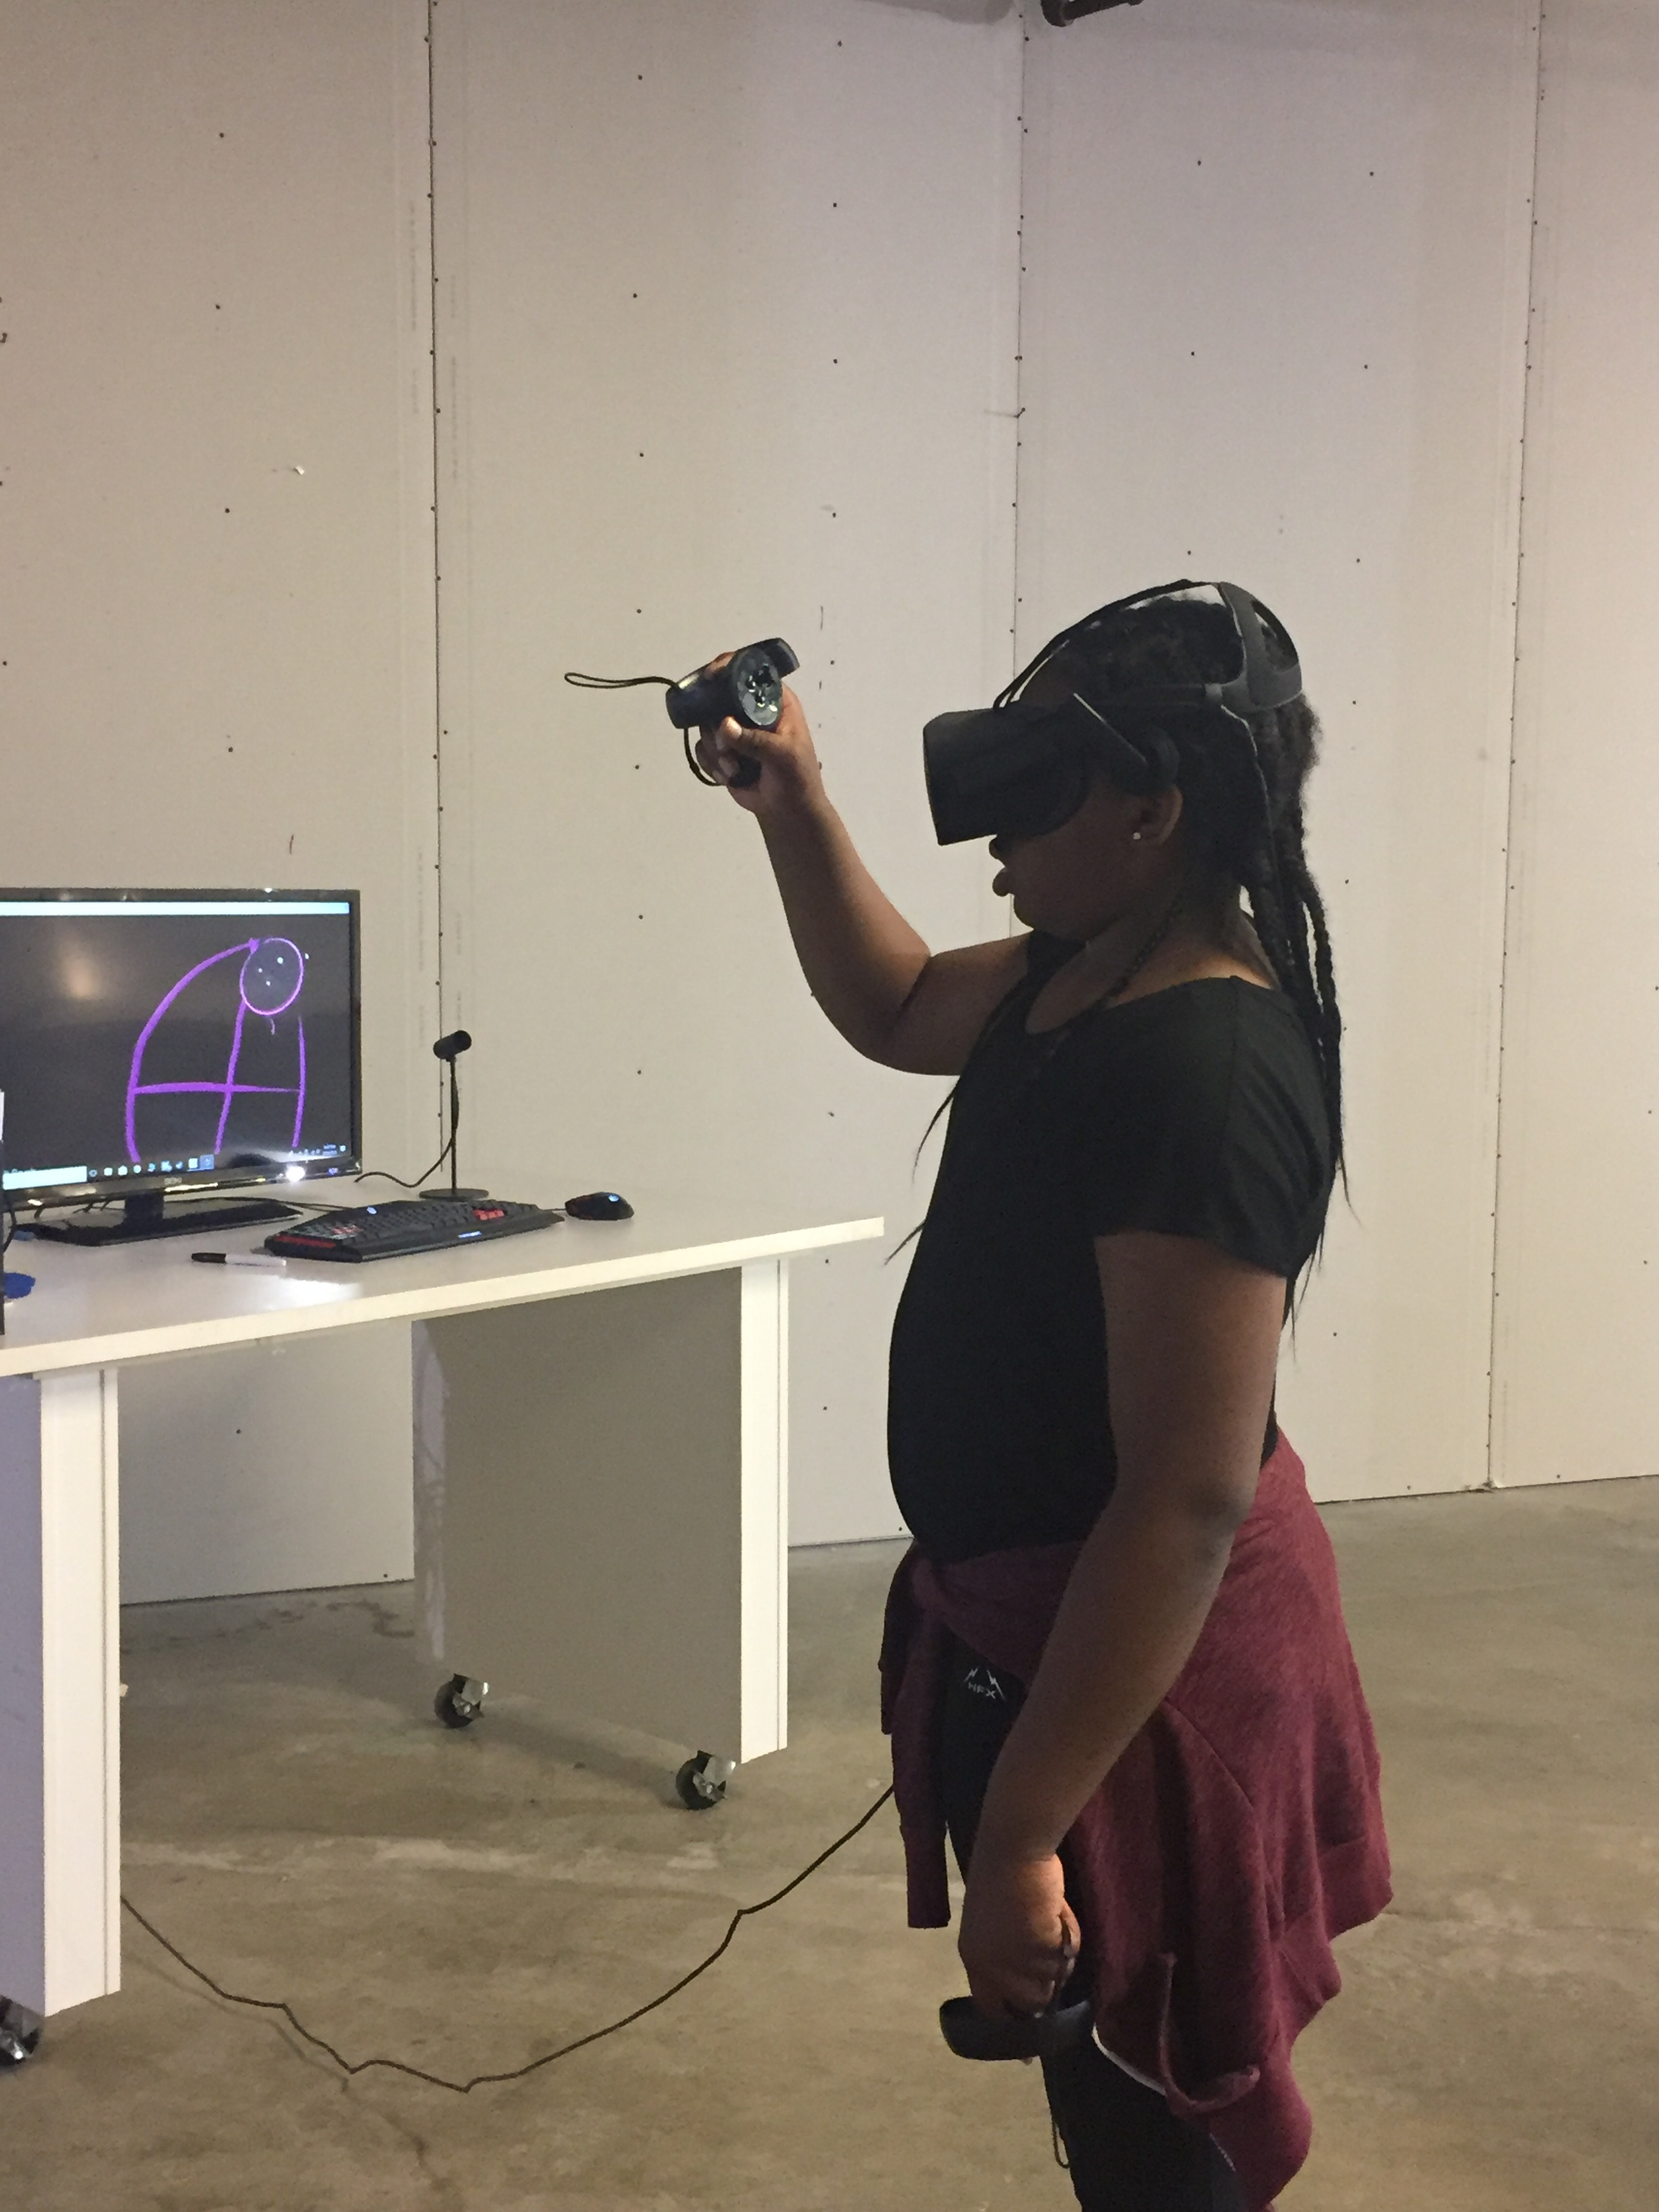 Ariel likes drawing in VR